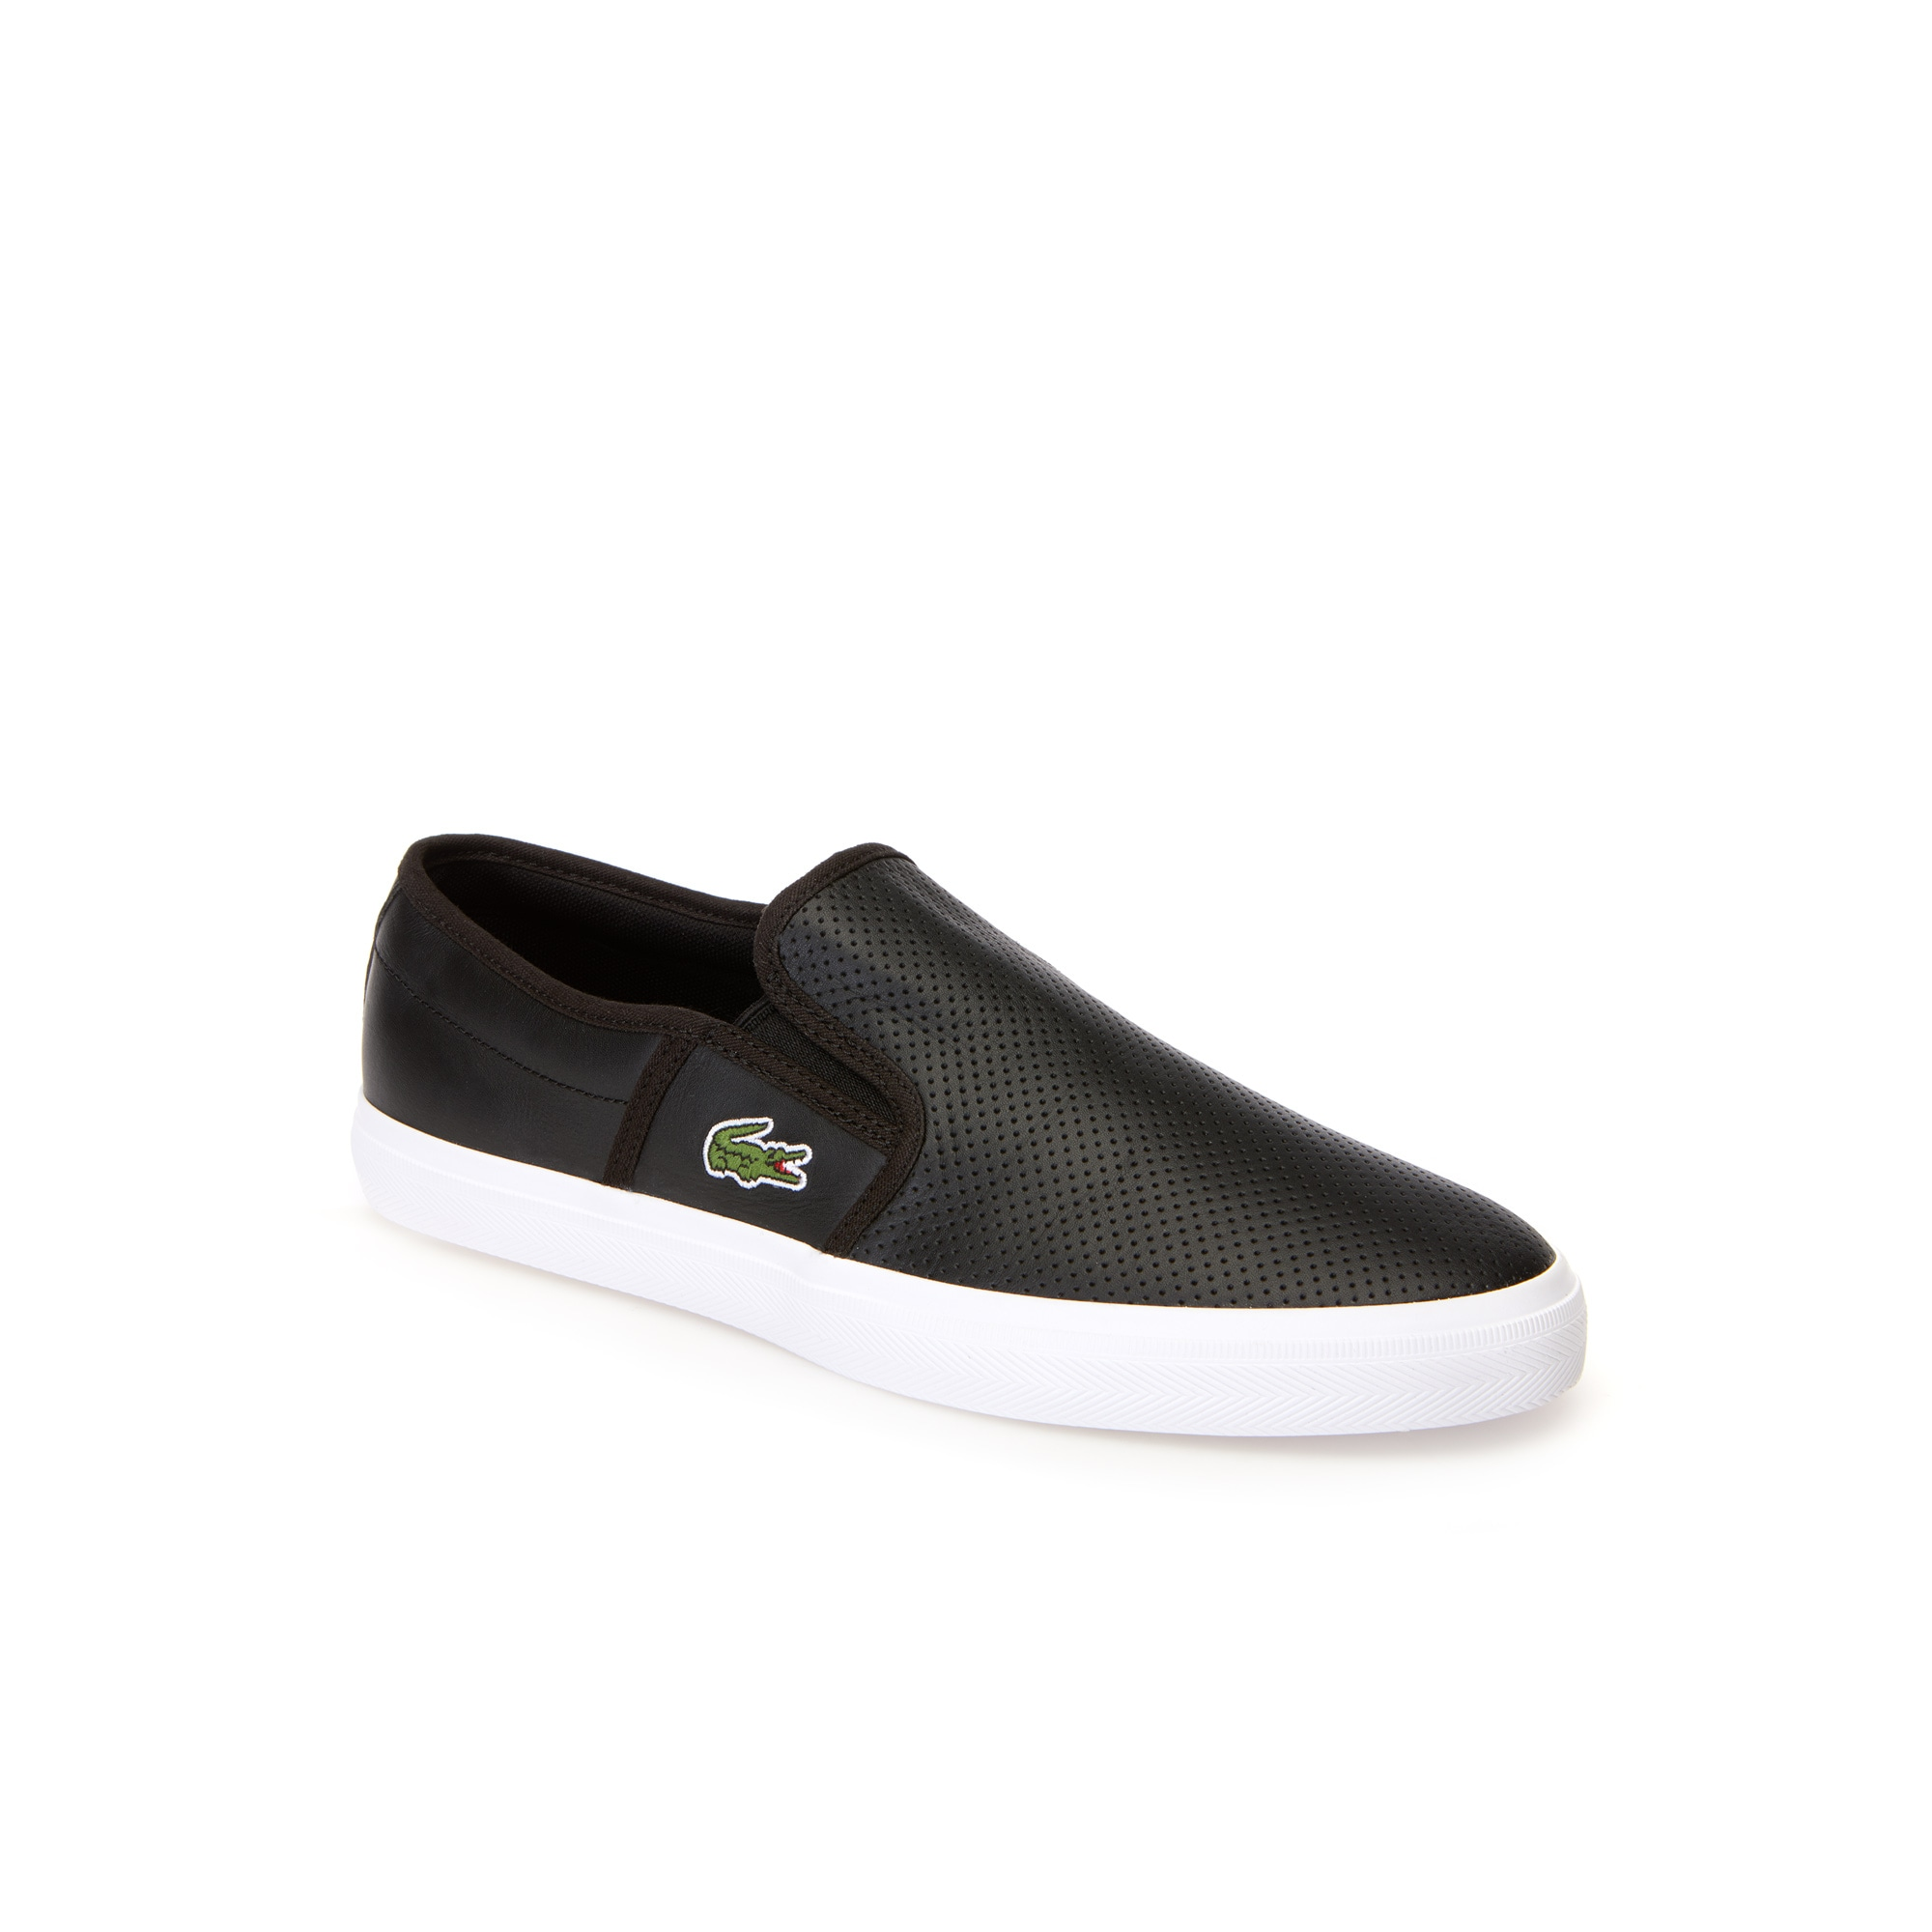 Men's Gazon Leather Slip-ons